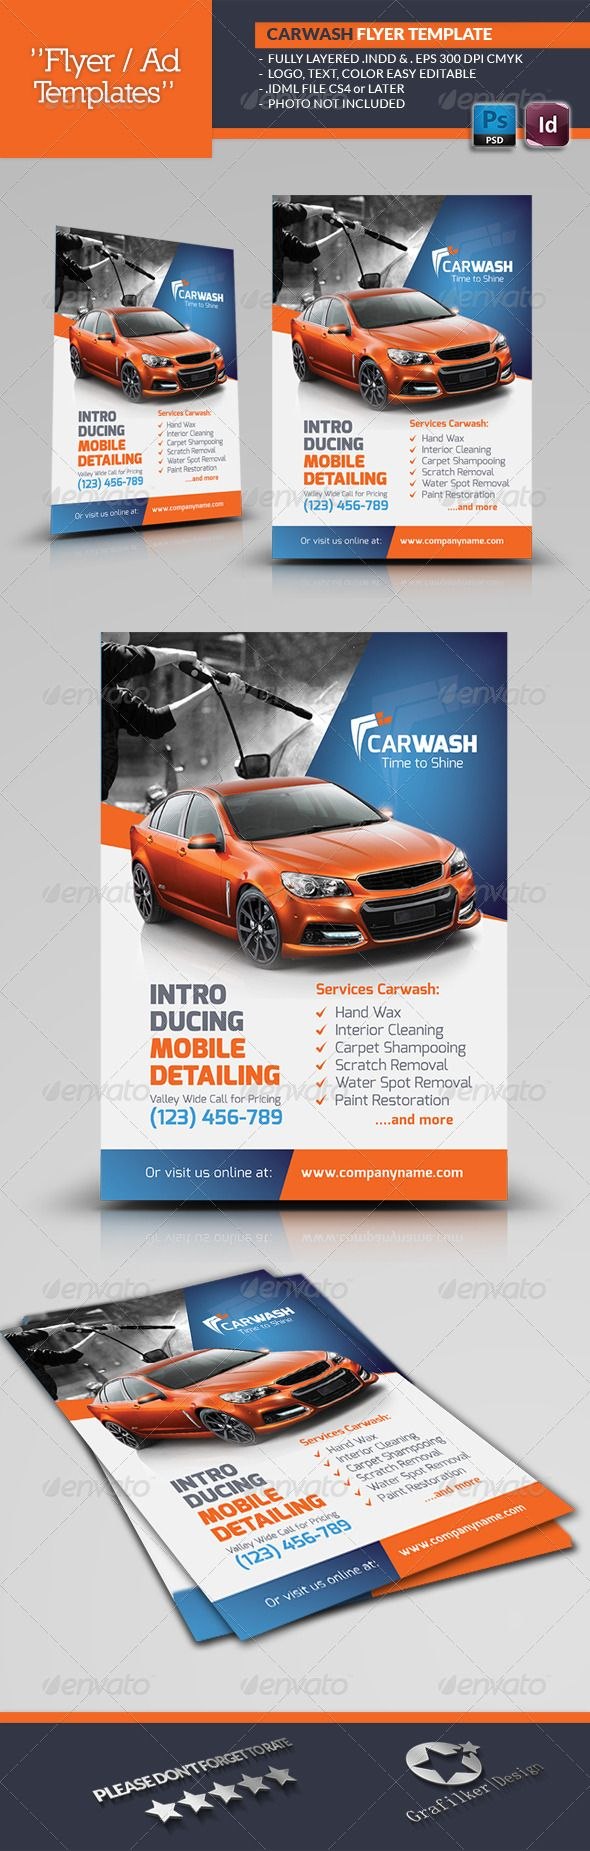 Car Wash Flyer Templates | Lavar, Lava y Lavado de auto